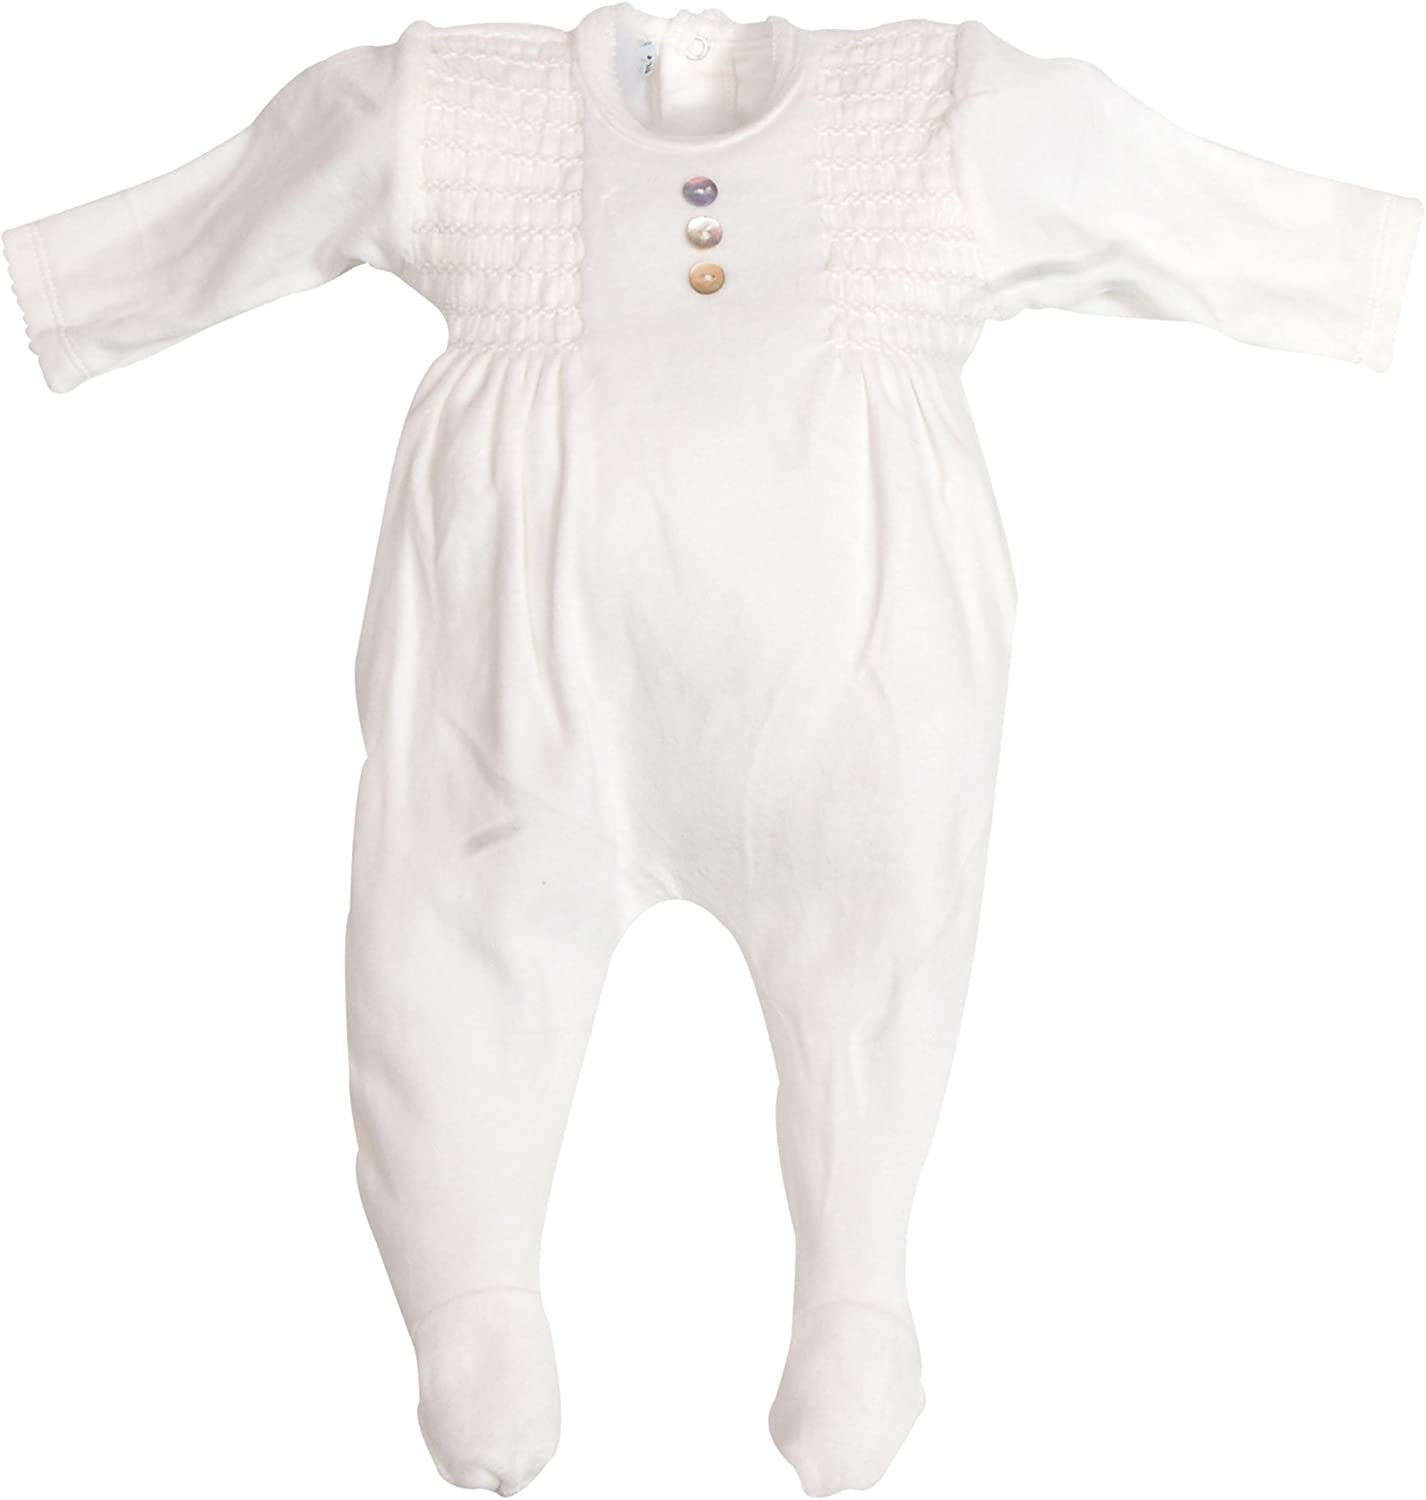 0-12 Months kavkas Baby Footies Velour Romper Newborn Sleep and Play Sleepsuit for Baby Girls and Boys Winter Clothing Set with Hat and Gloves